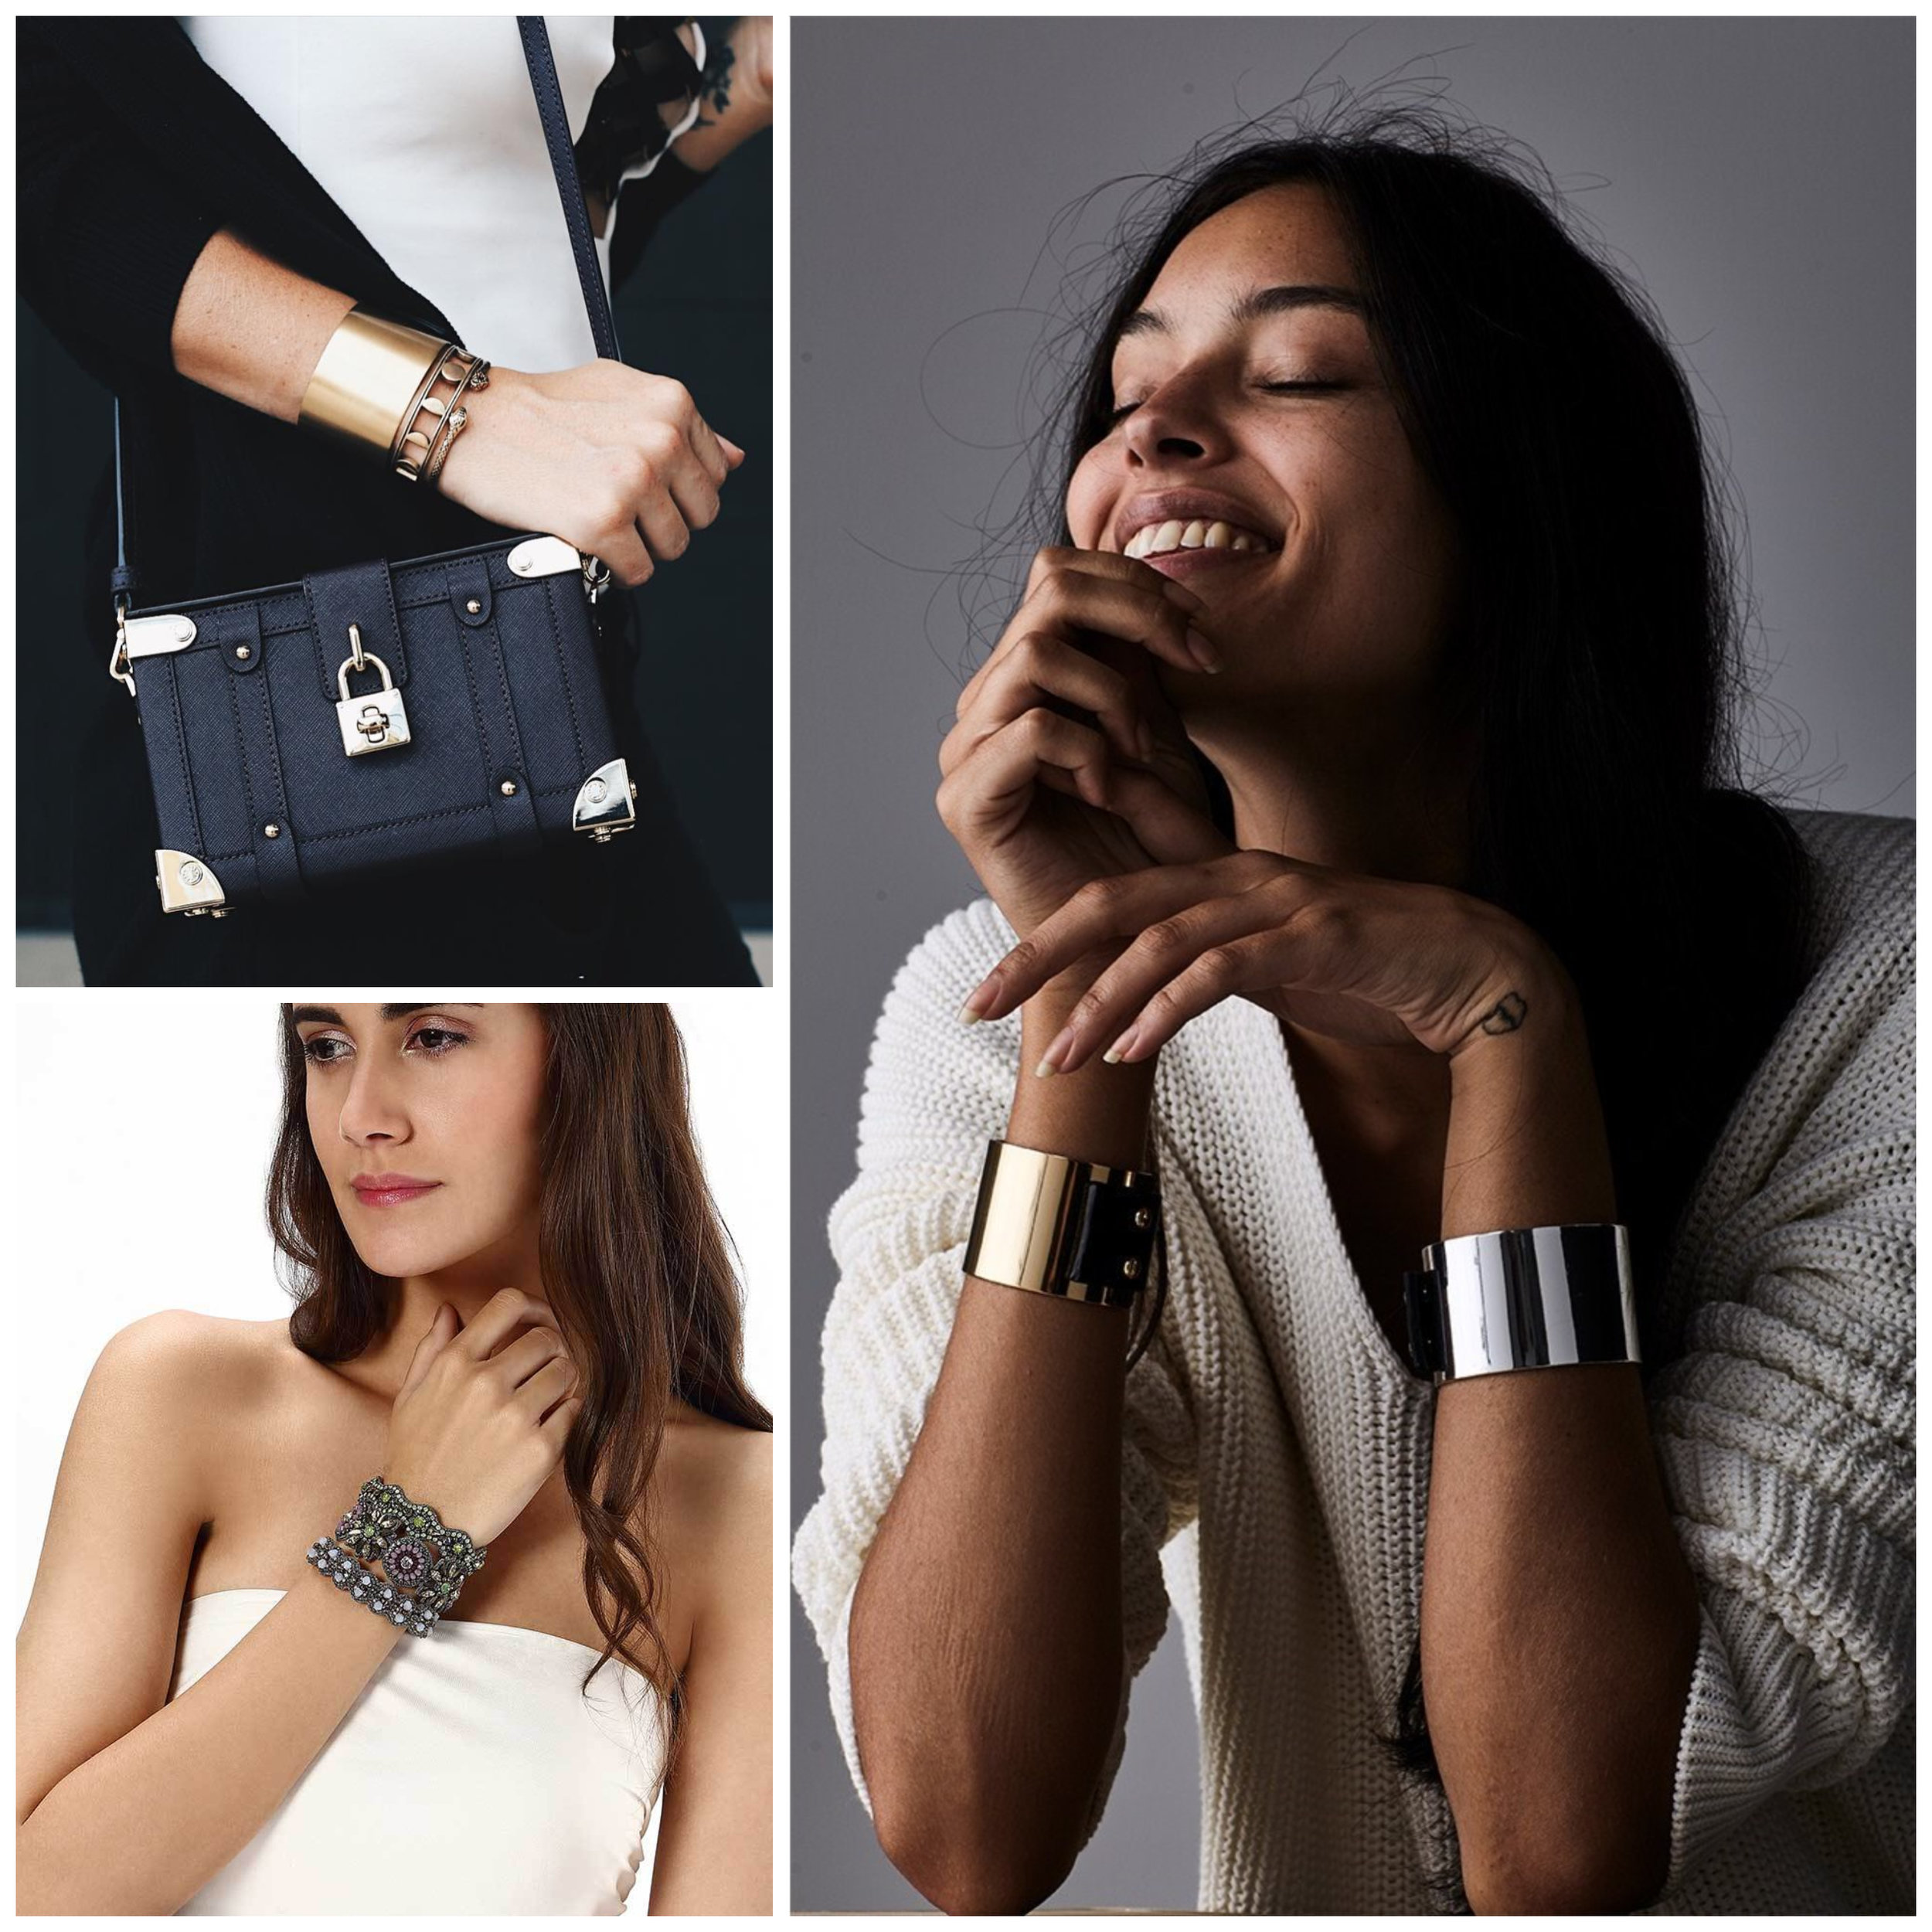 Statement Cuffs - Take a casual fall outfit and add instant glam to it with a sleek, chic cuff bracelet! Roll up your sleeves and show them off!